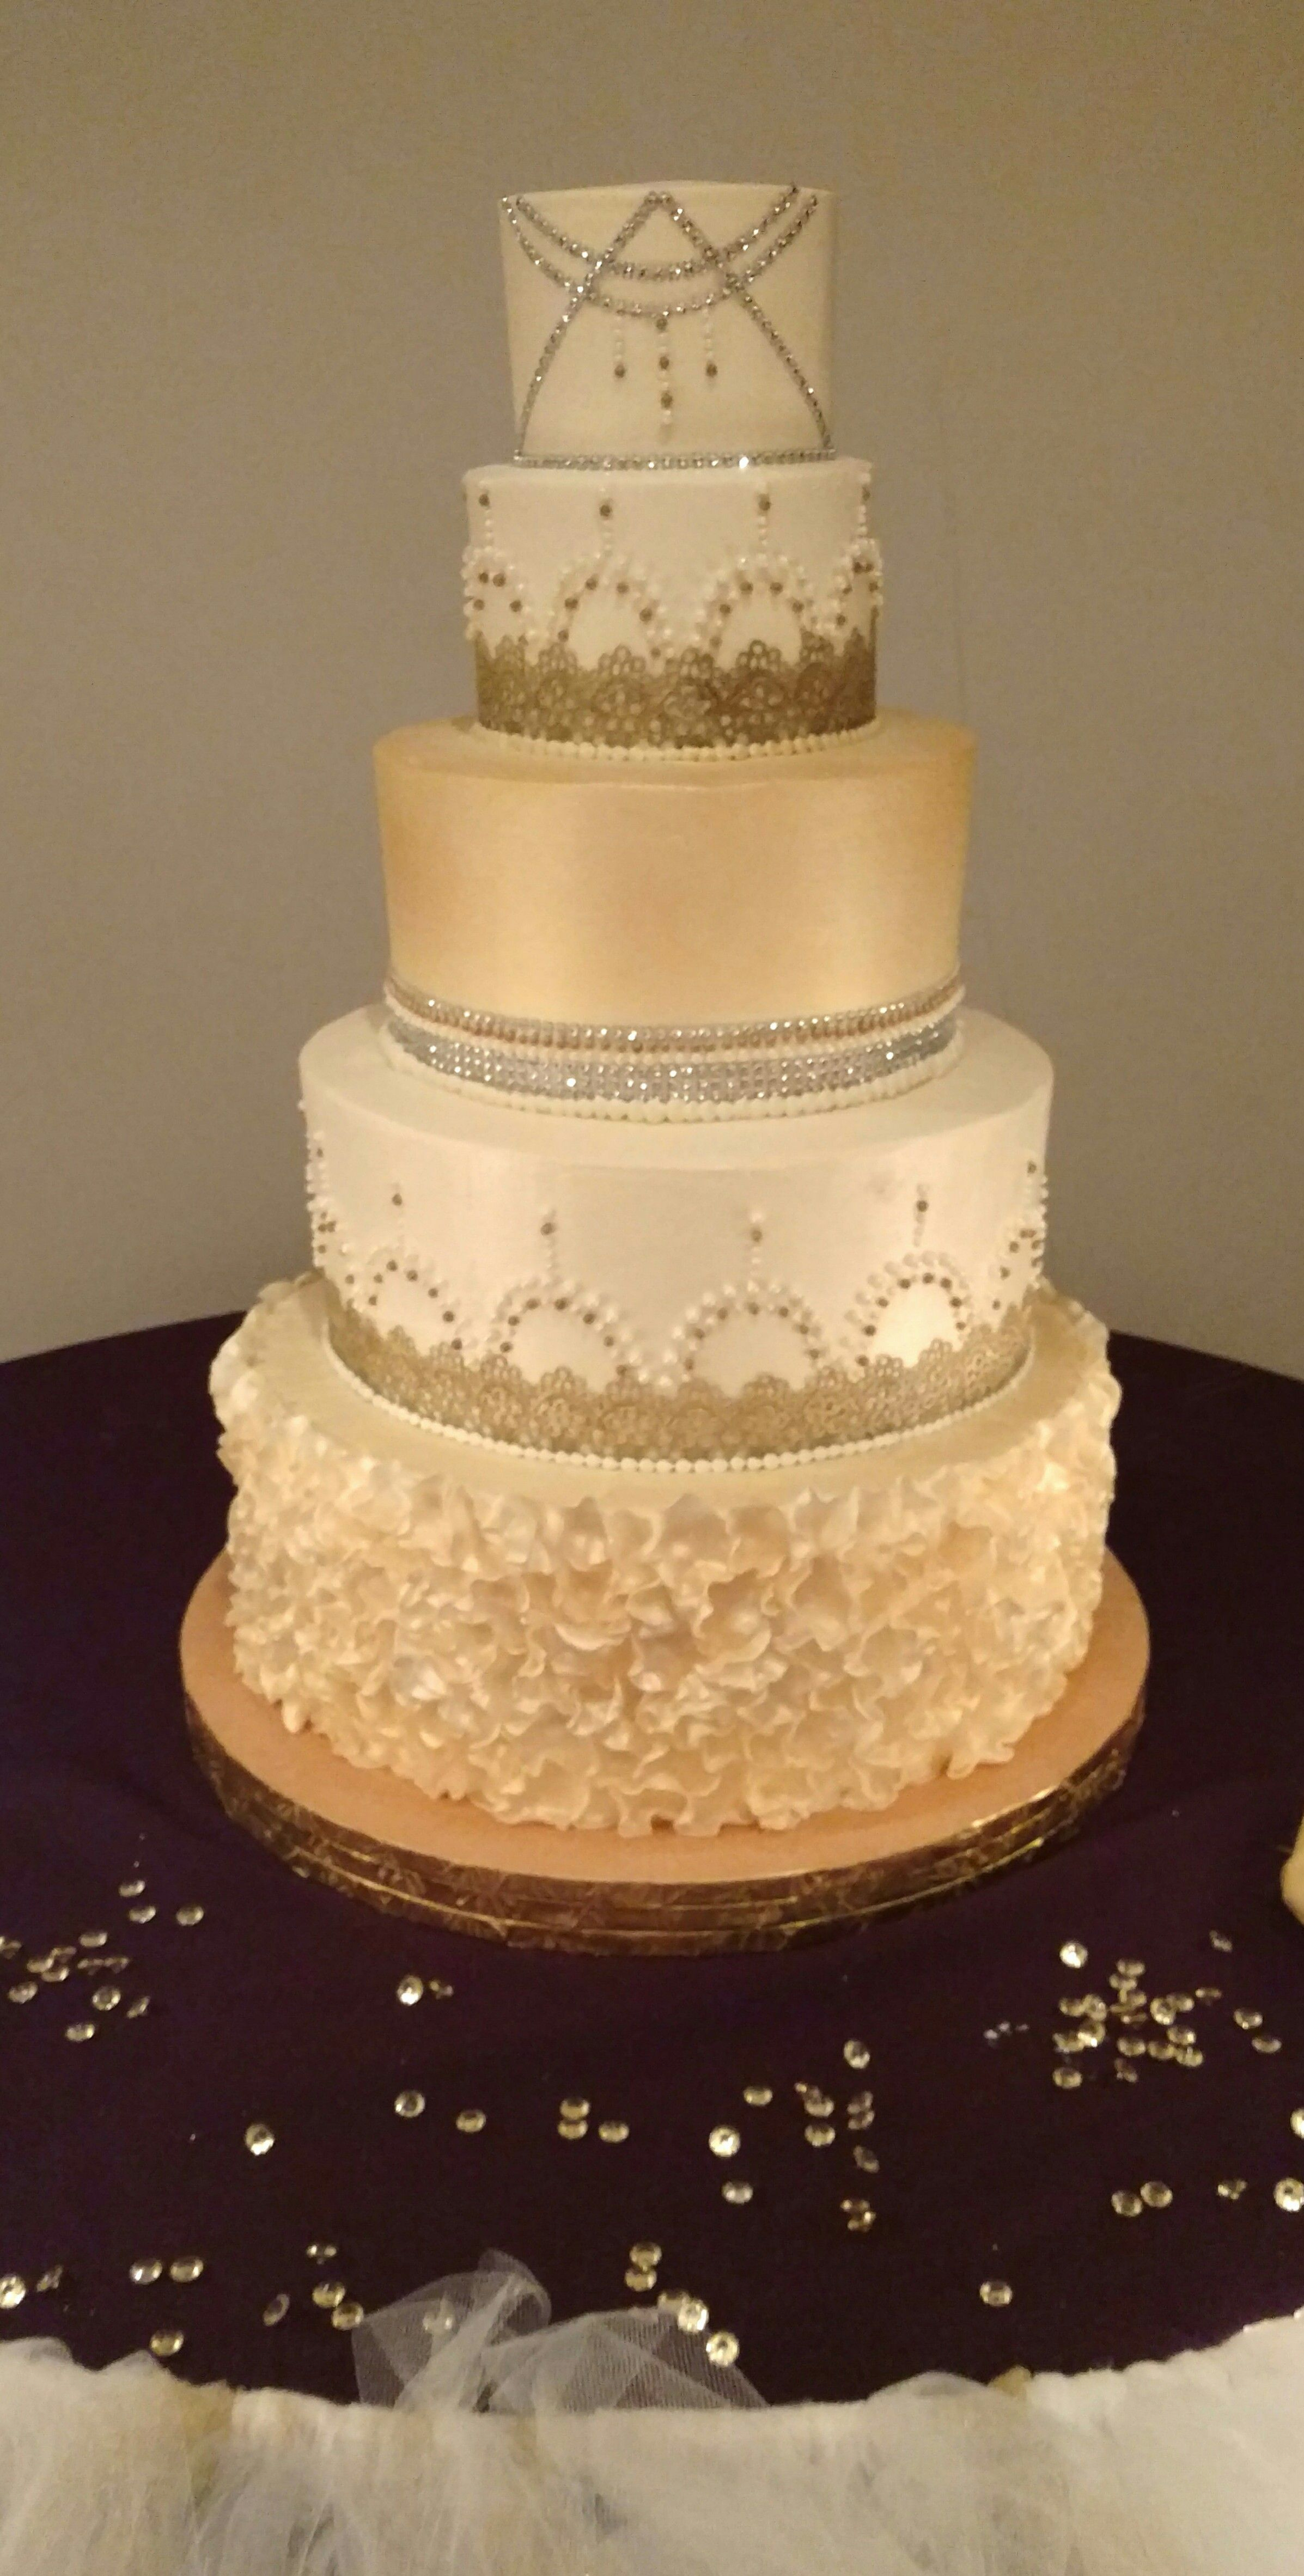 Its All About The Detail In Any Spectacular Wedding Cake Design European Bakery Custom Cakes Are Just Ticket